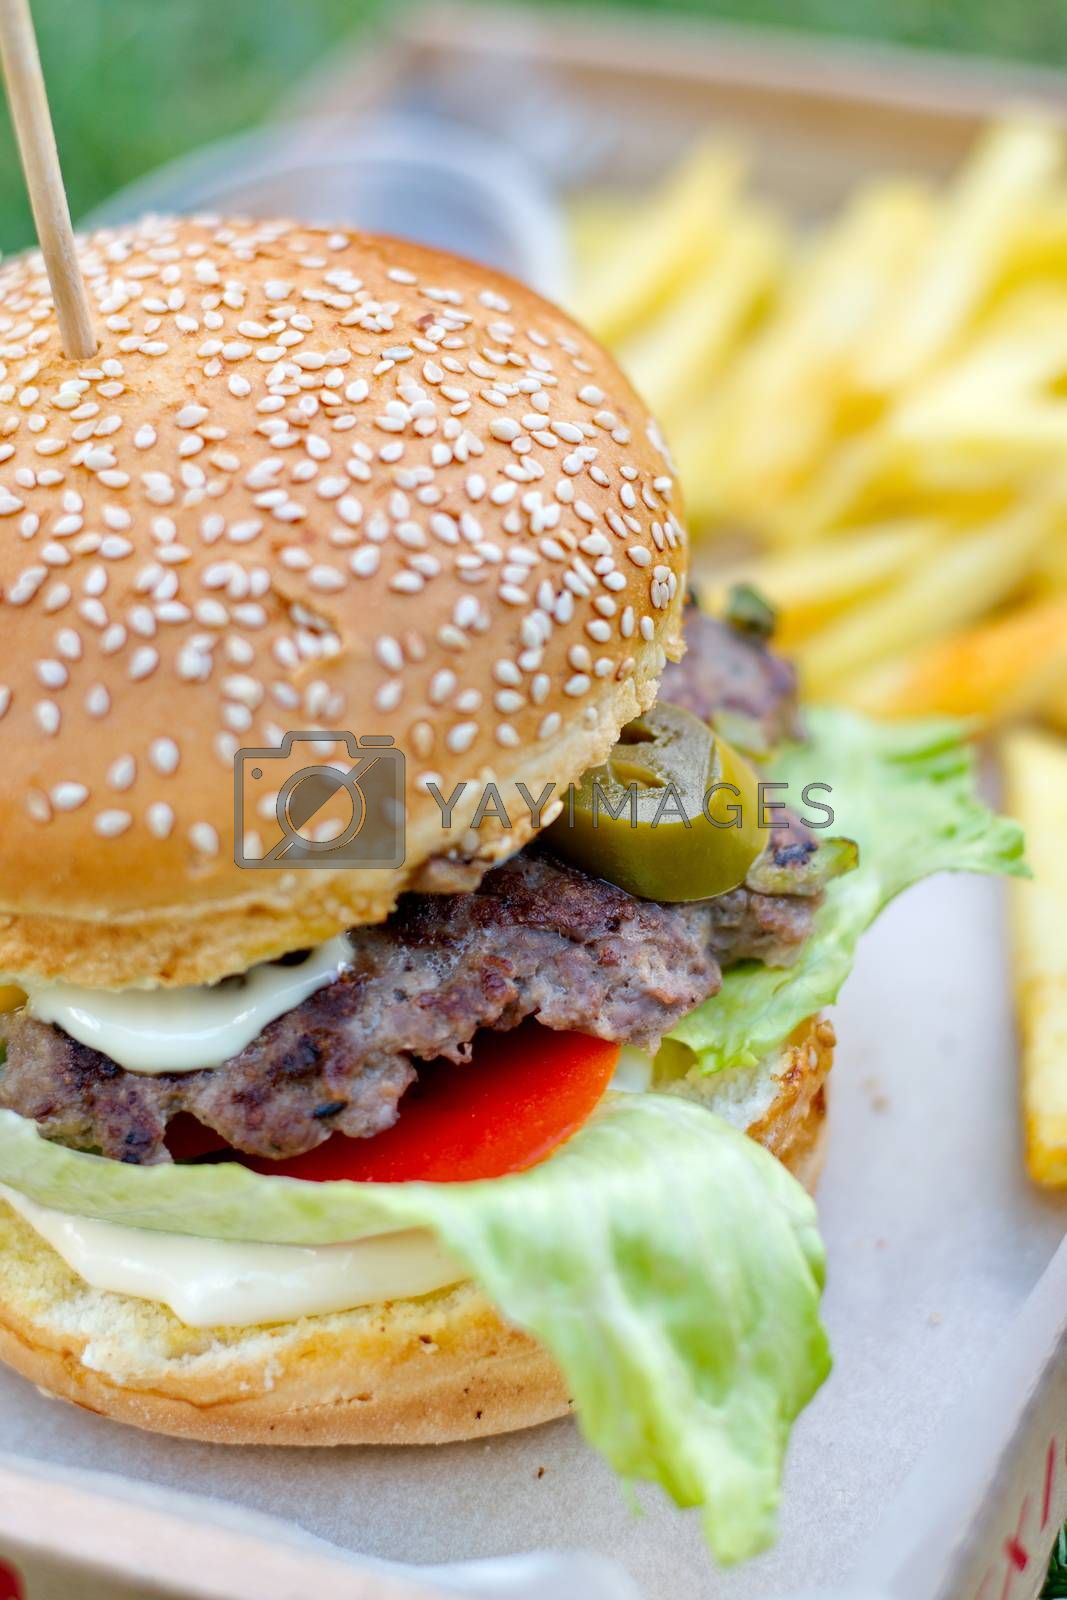 Juicy hamburger